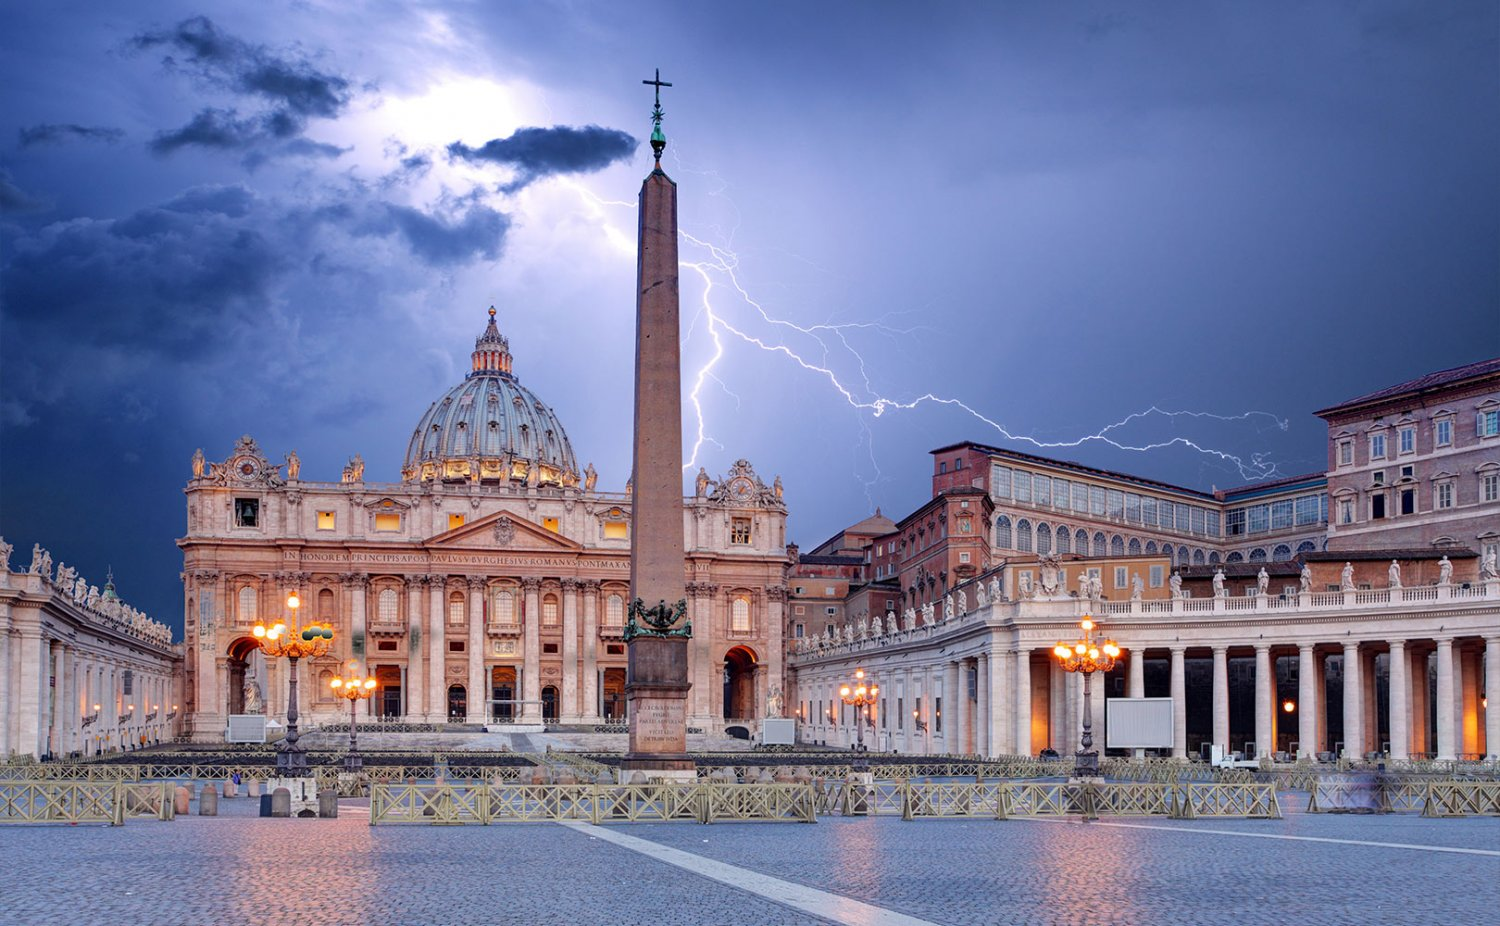 https://fratresinunum.files.wordpress.com/2018/09/vaticanlightning-1-1500x926.jpg